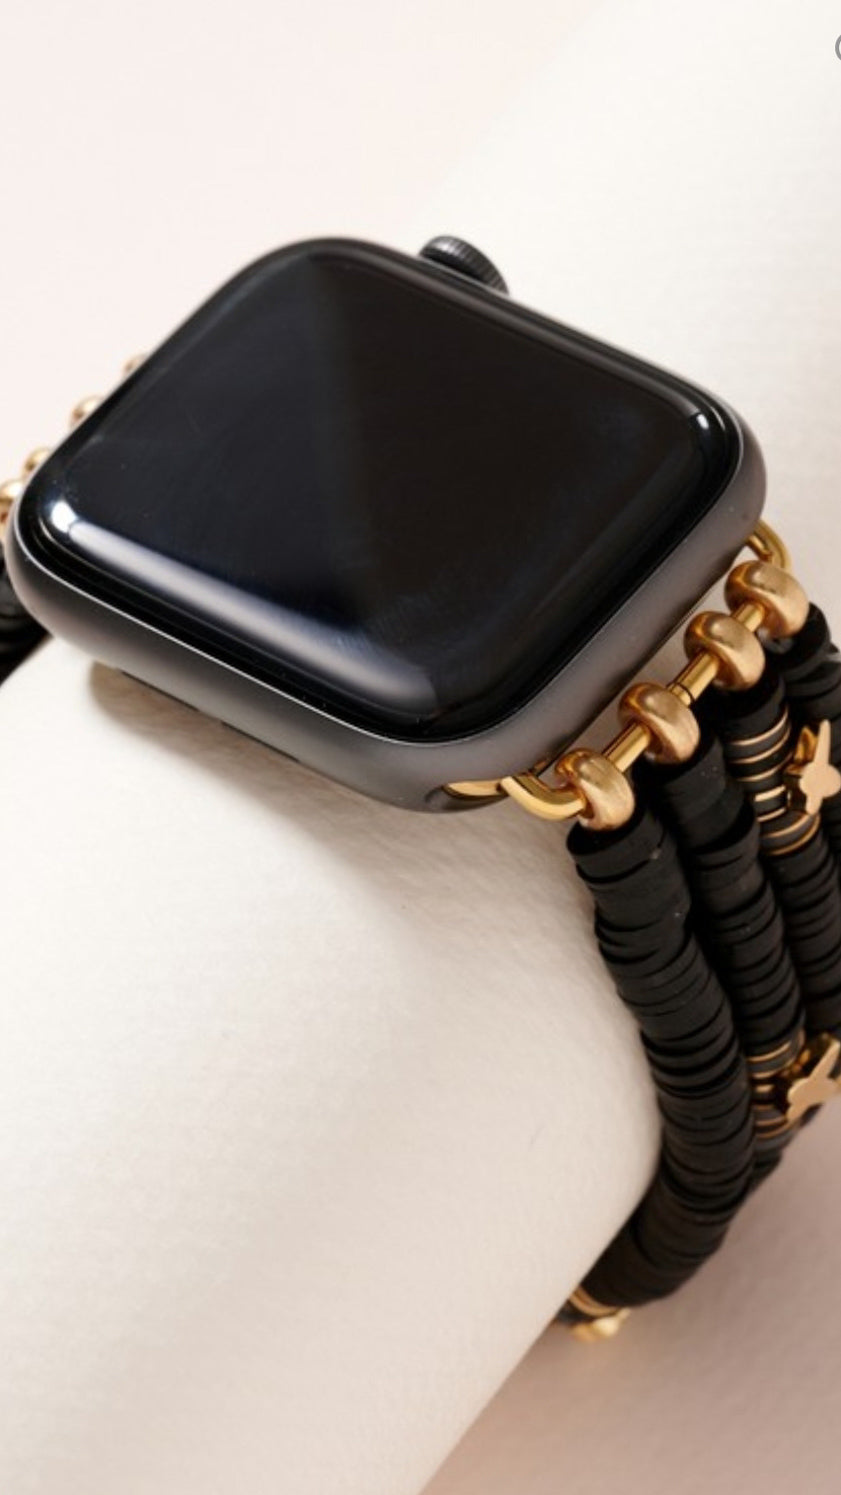 iWatch Butterfly Band - Black - OWN YOUR ELEGANCE